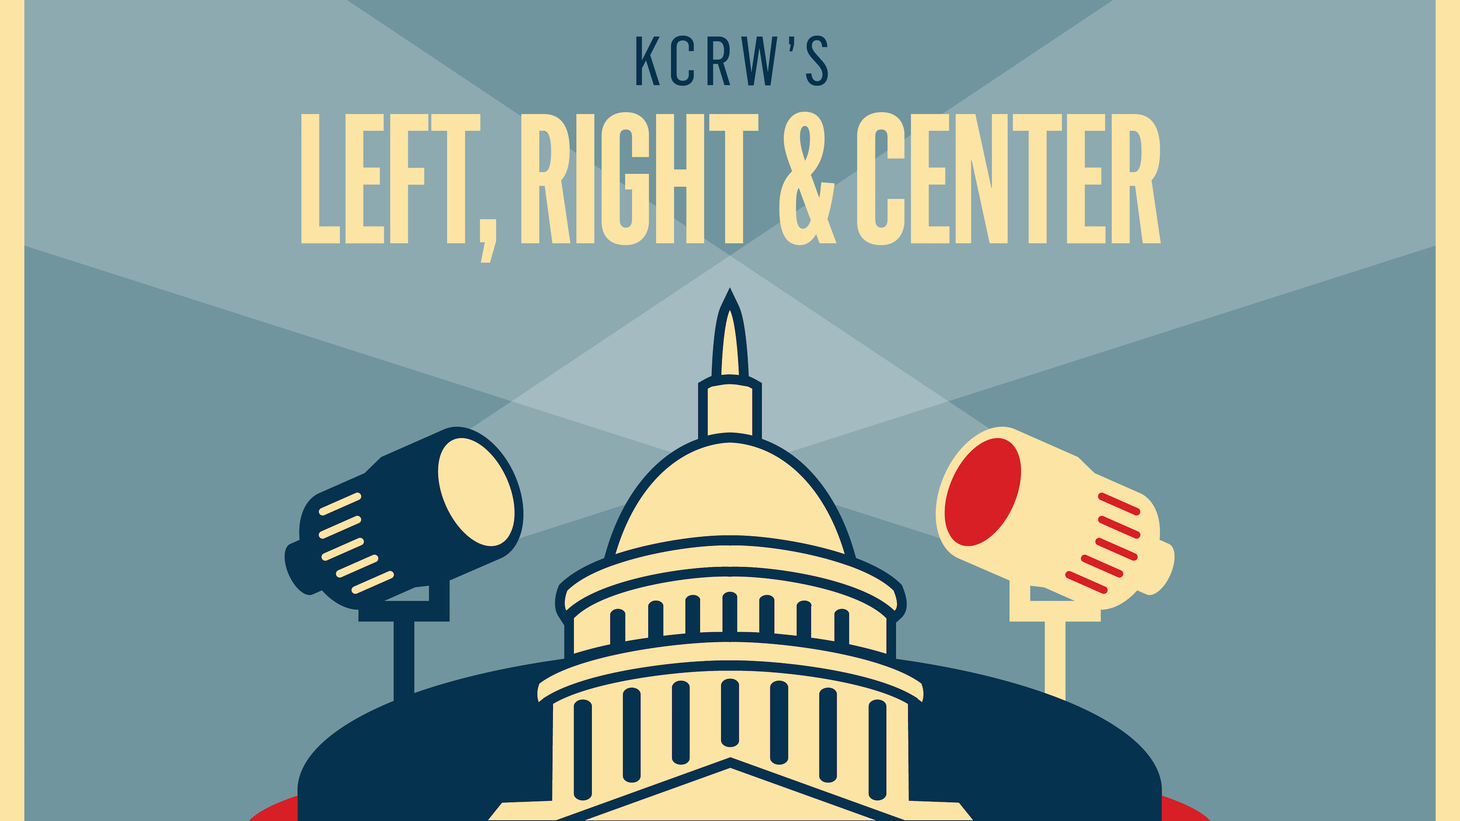 This week, our guest on the Right is Rich Lowry, editor of the National Review.In order to accommodate our Thanksgiving special programs, this week's LR&C will NOT air at its regularly scheduled time. Tune in instead Thursday, November 25 at 7pm and Friday afternoon at 3pm for the Thanksgiving edition of Left, Right & Center.